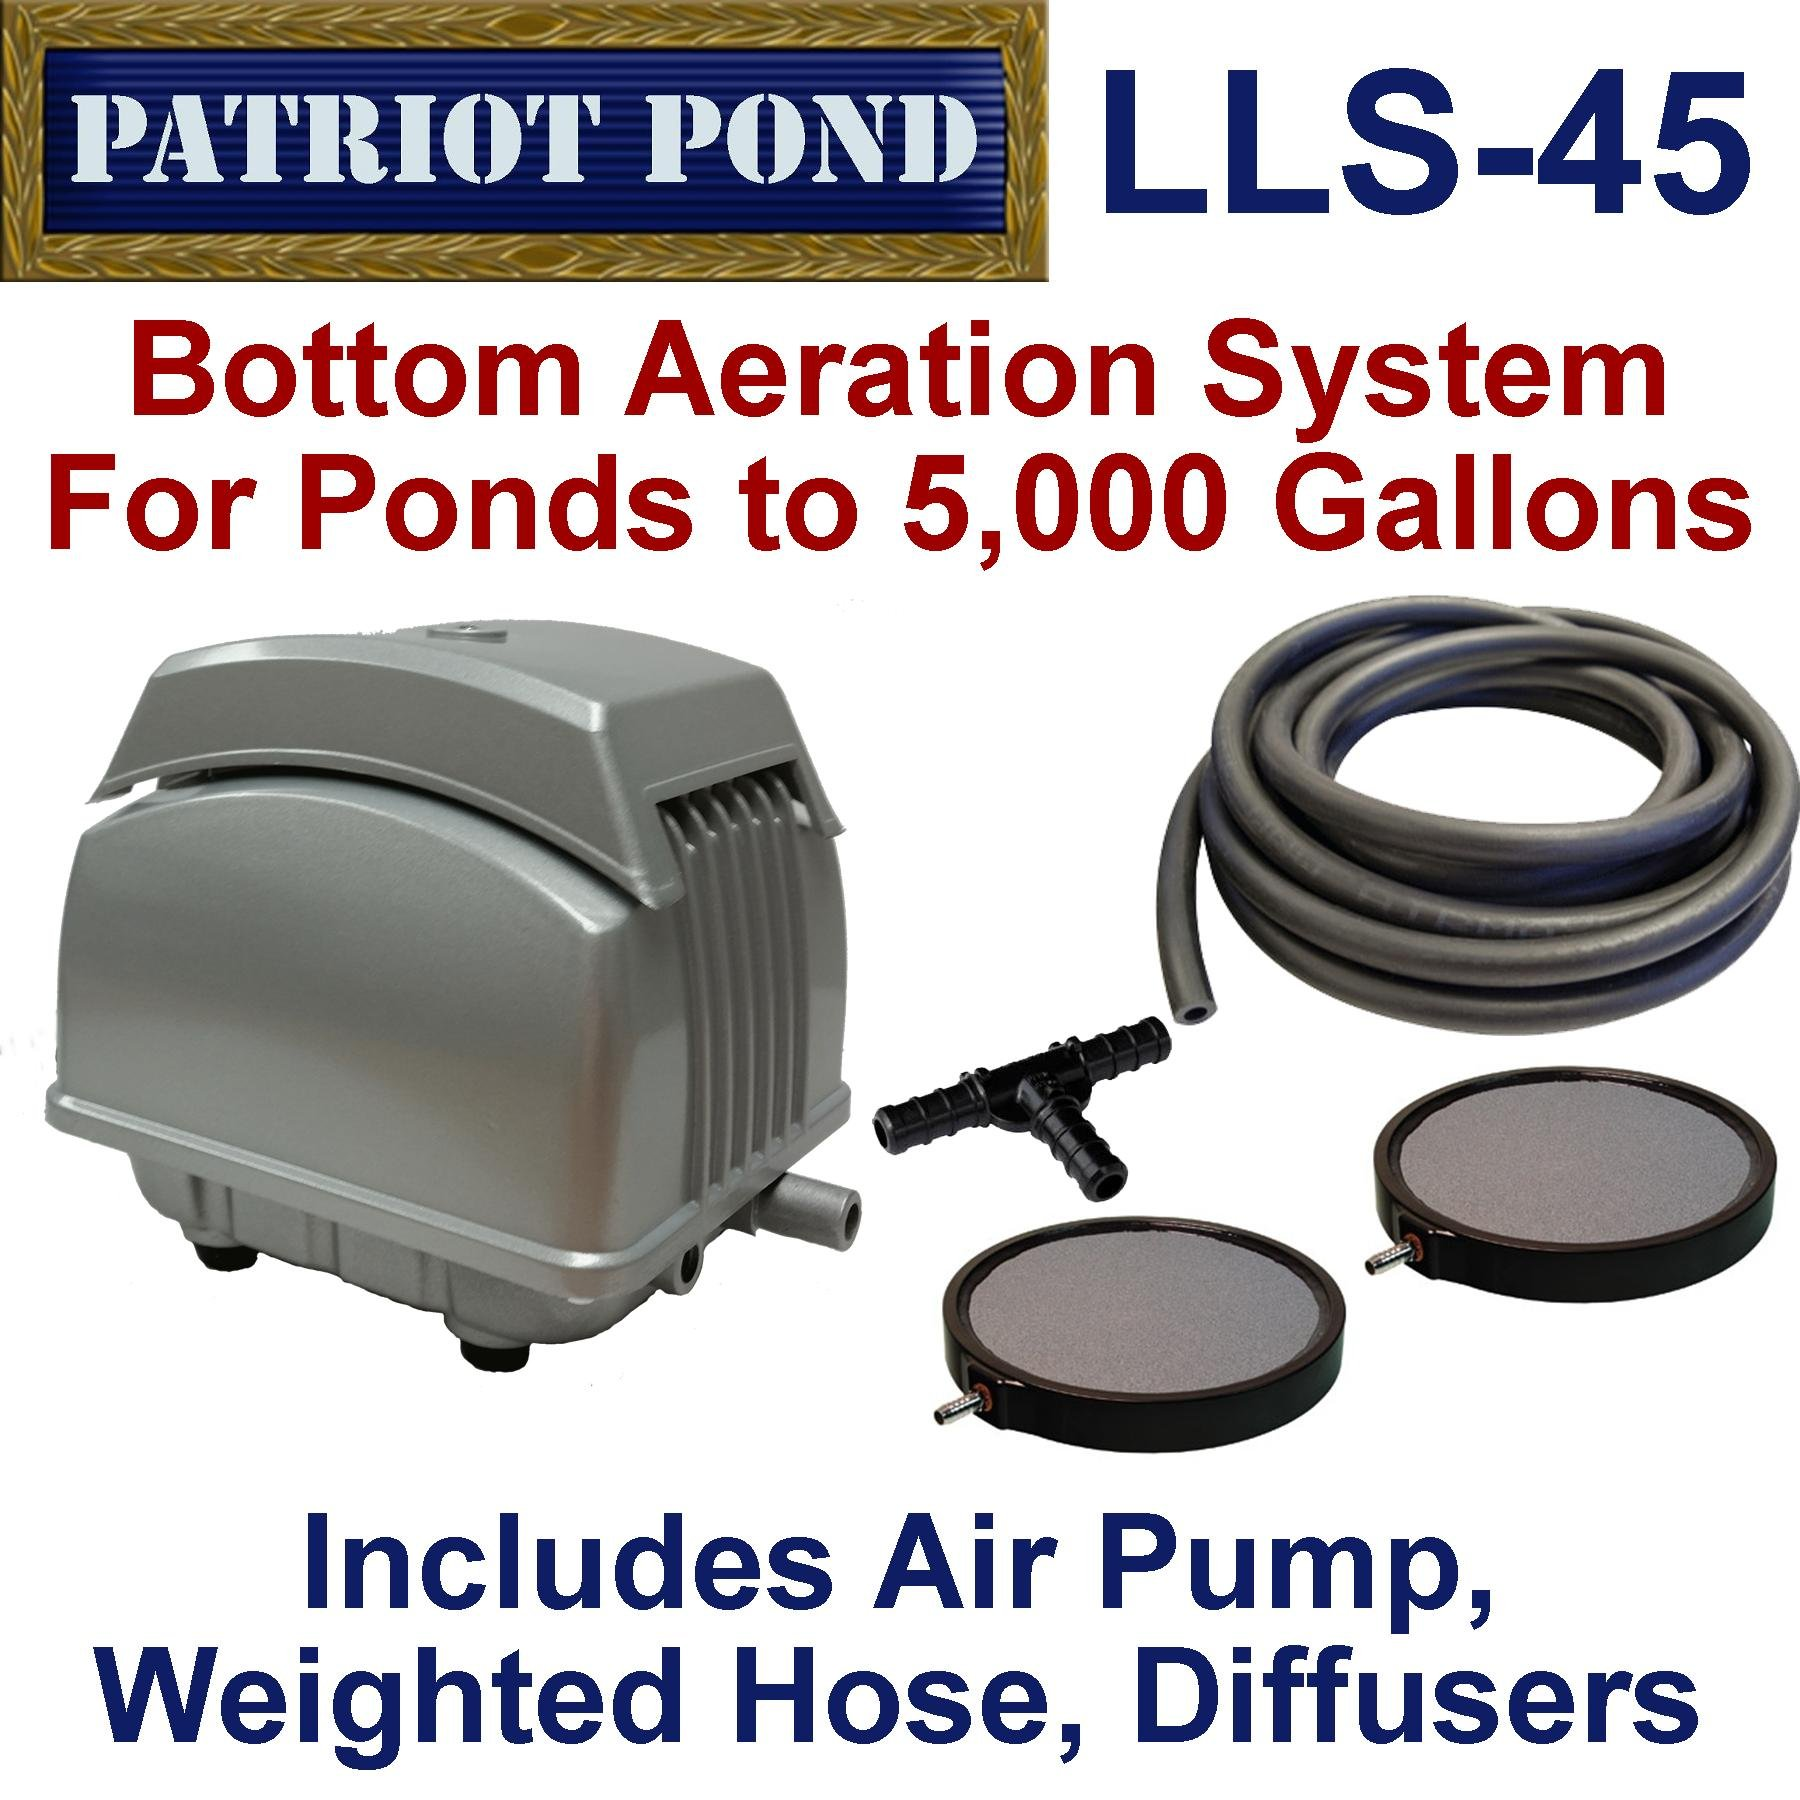 Patriot Bottom Aeration System LLS-45, For Ponds to 4,000 Gallons And Pond Depths To 15Feet by Patriot